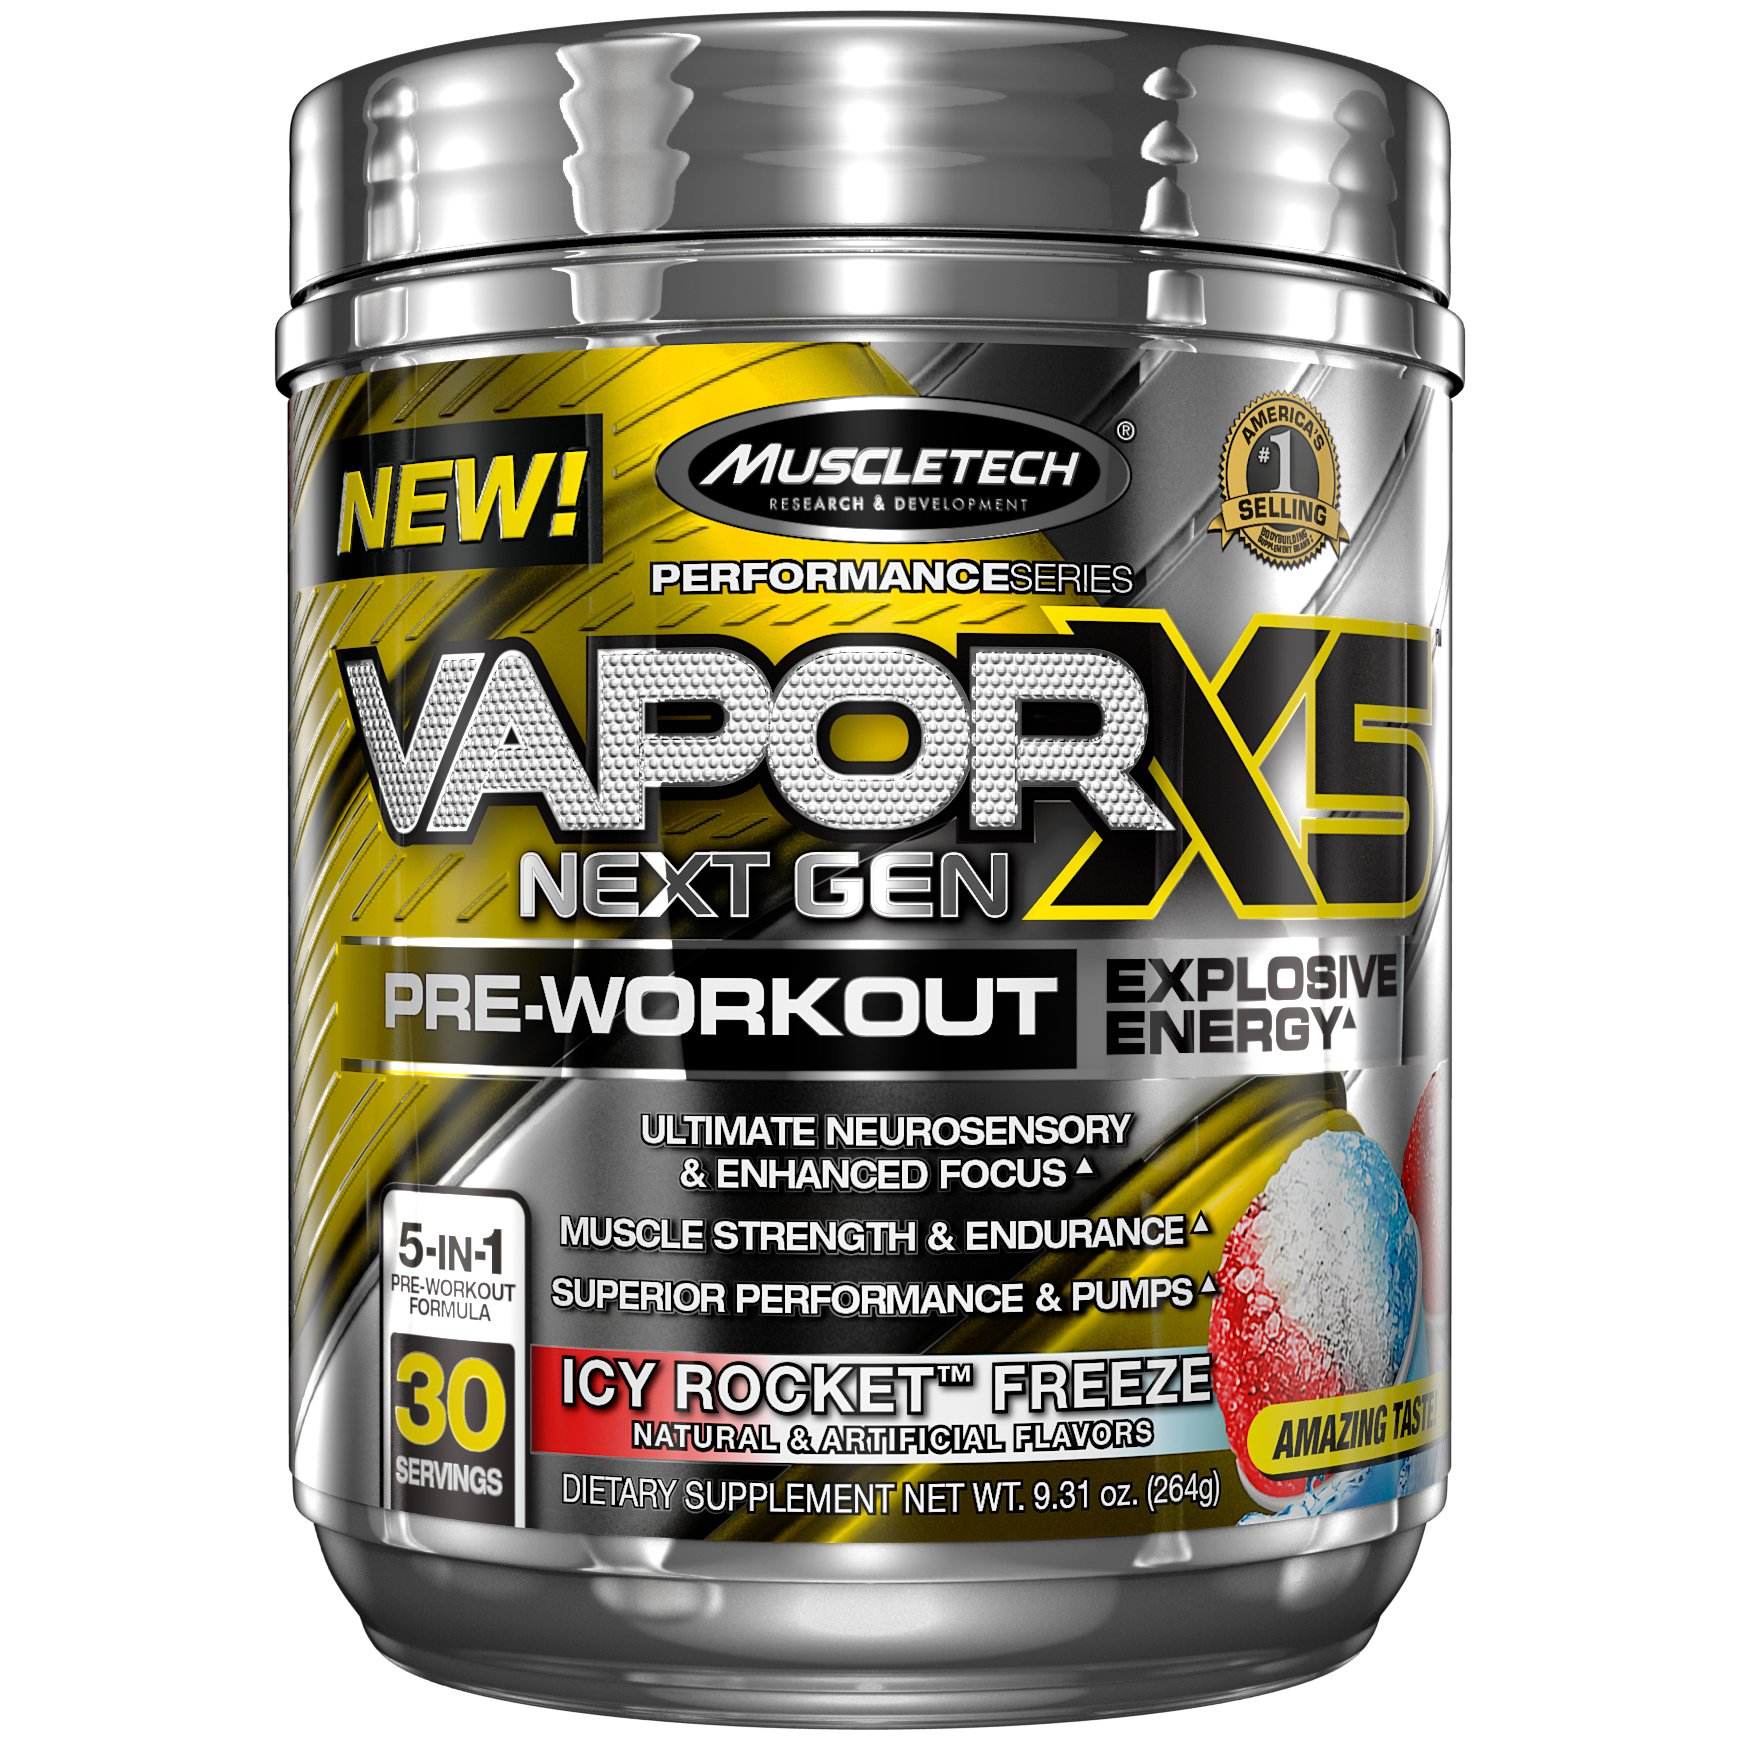 MuscleTech Performance Series Vapor X5, Next Gen Pre-Workout Powder, Icy Rocket Freeze, 30 Servings